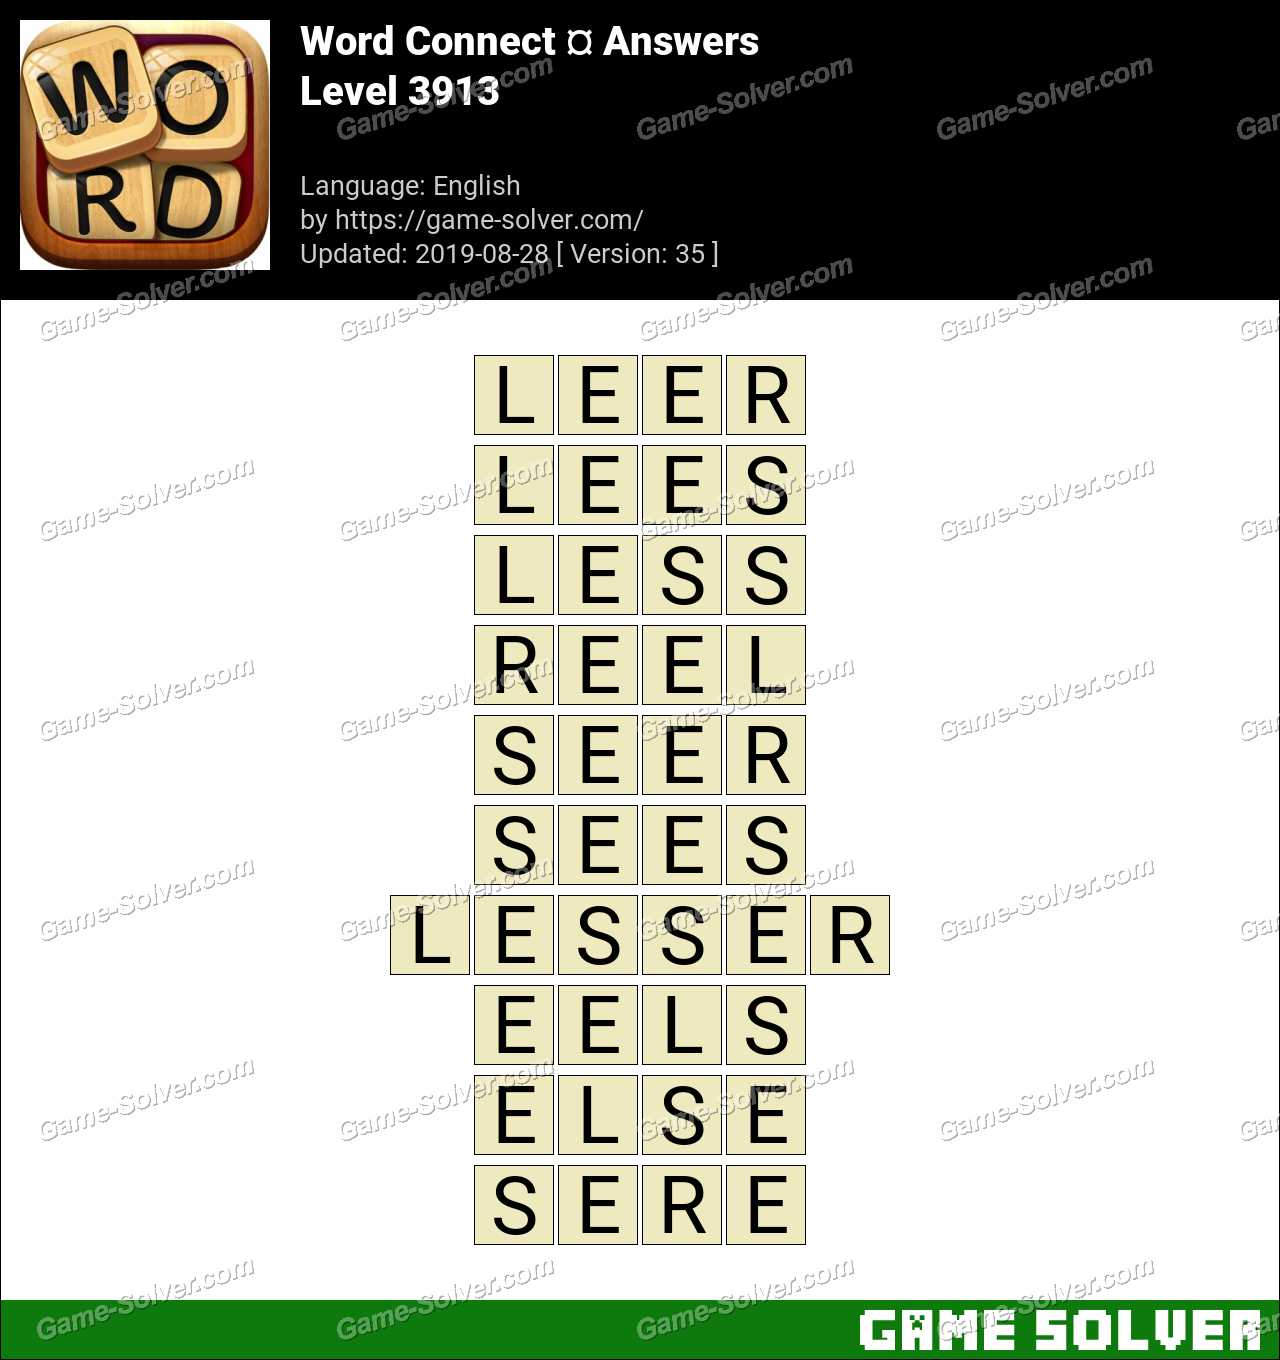 Word Connect Level 3913 Answers